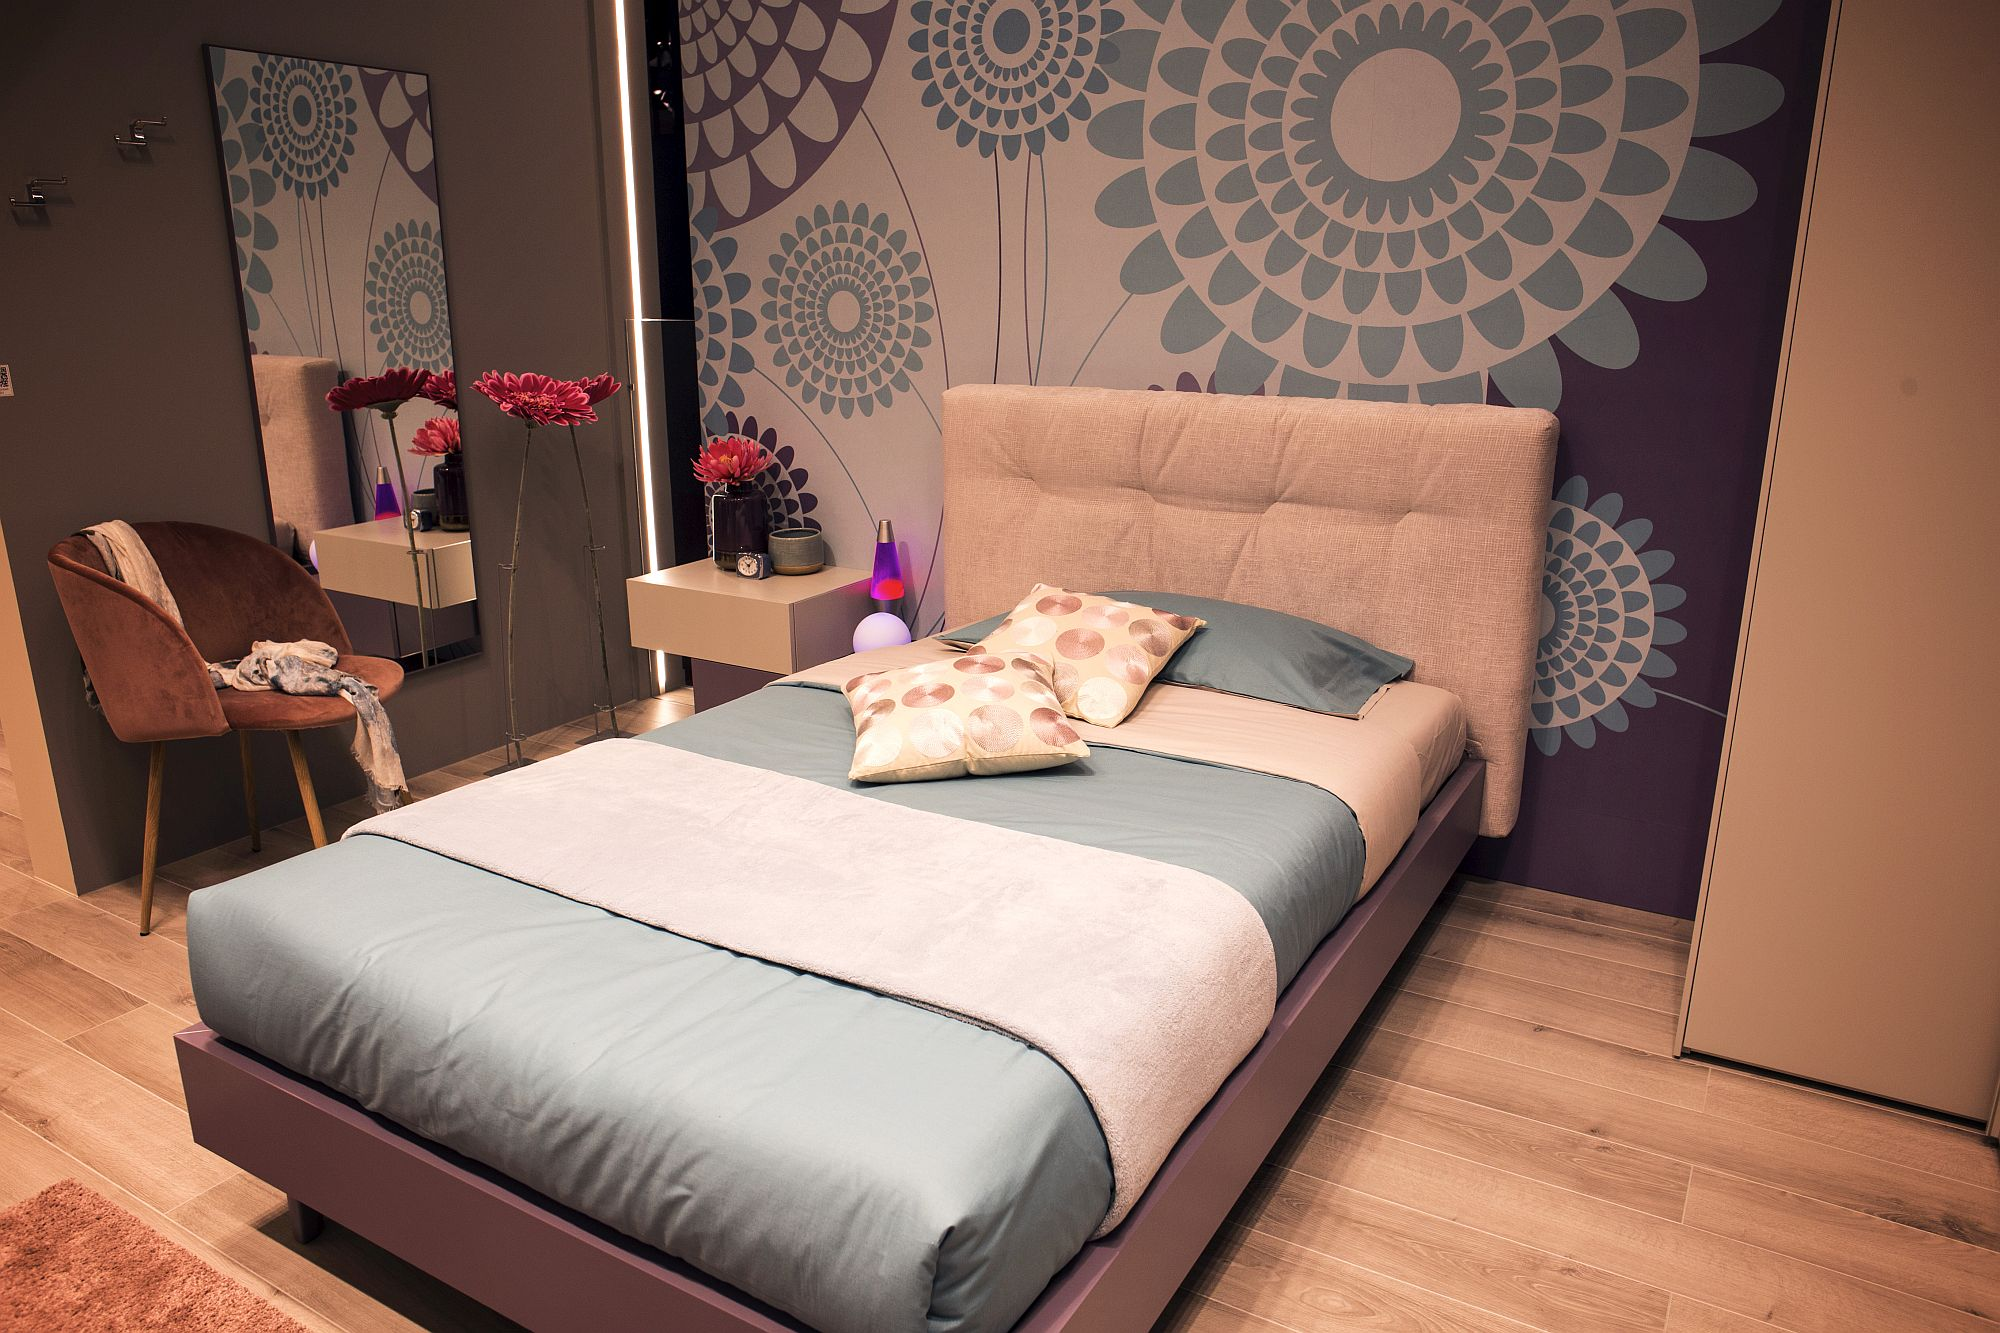 Flowers and the pattern of the backdrop add feminine charm to the girls' bedroom